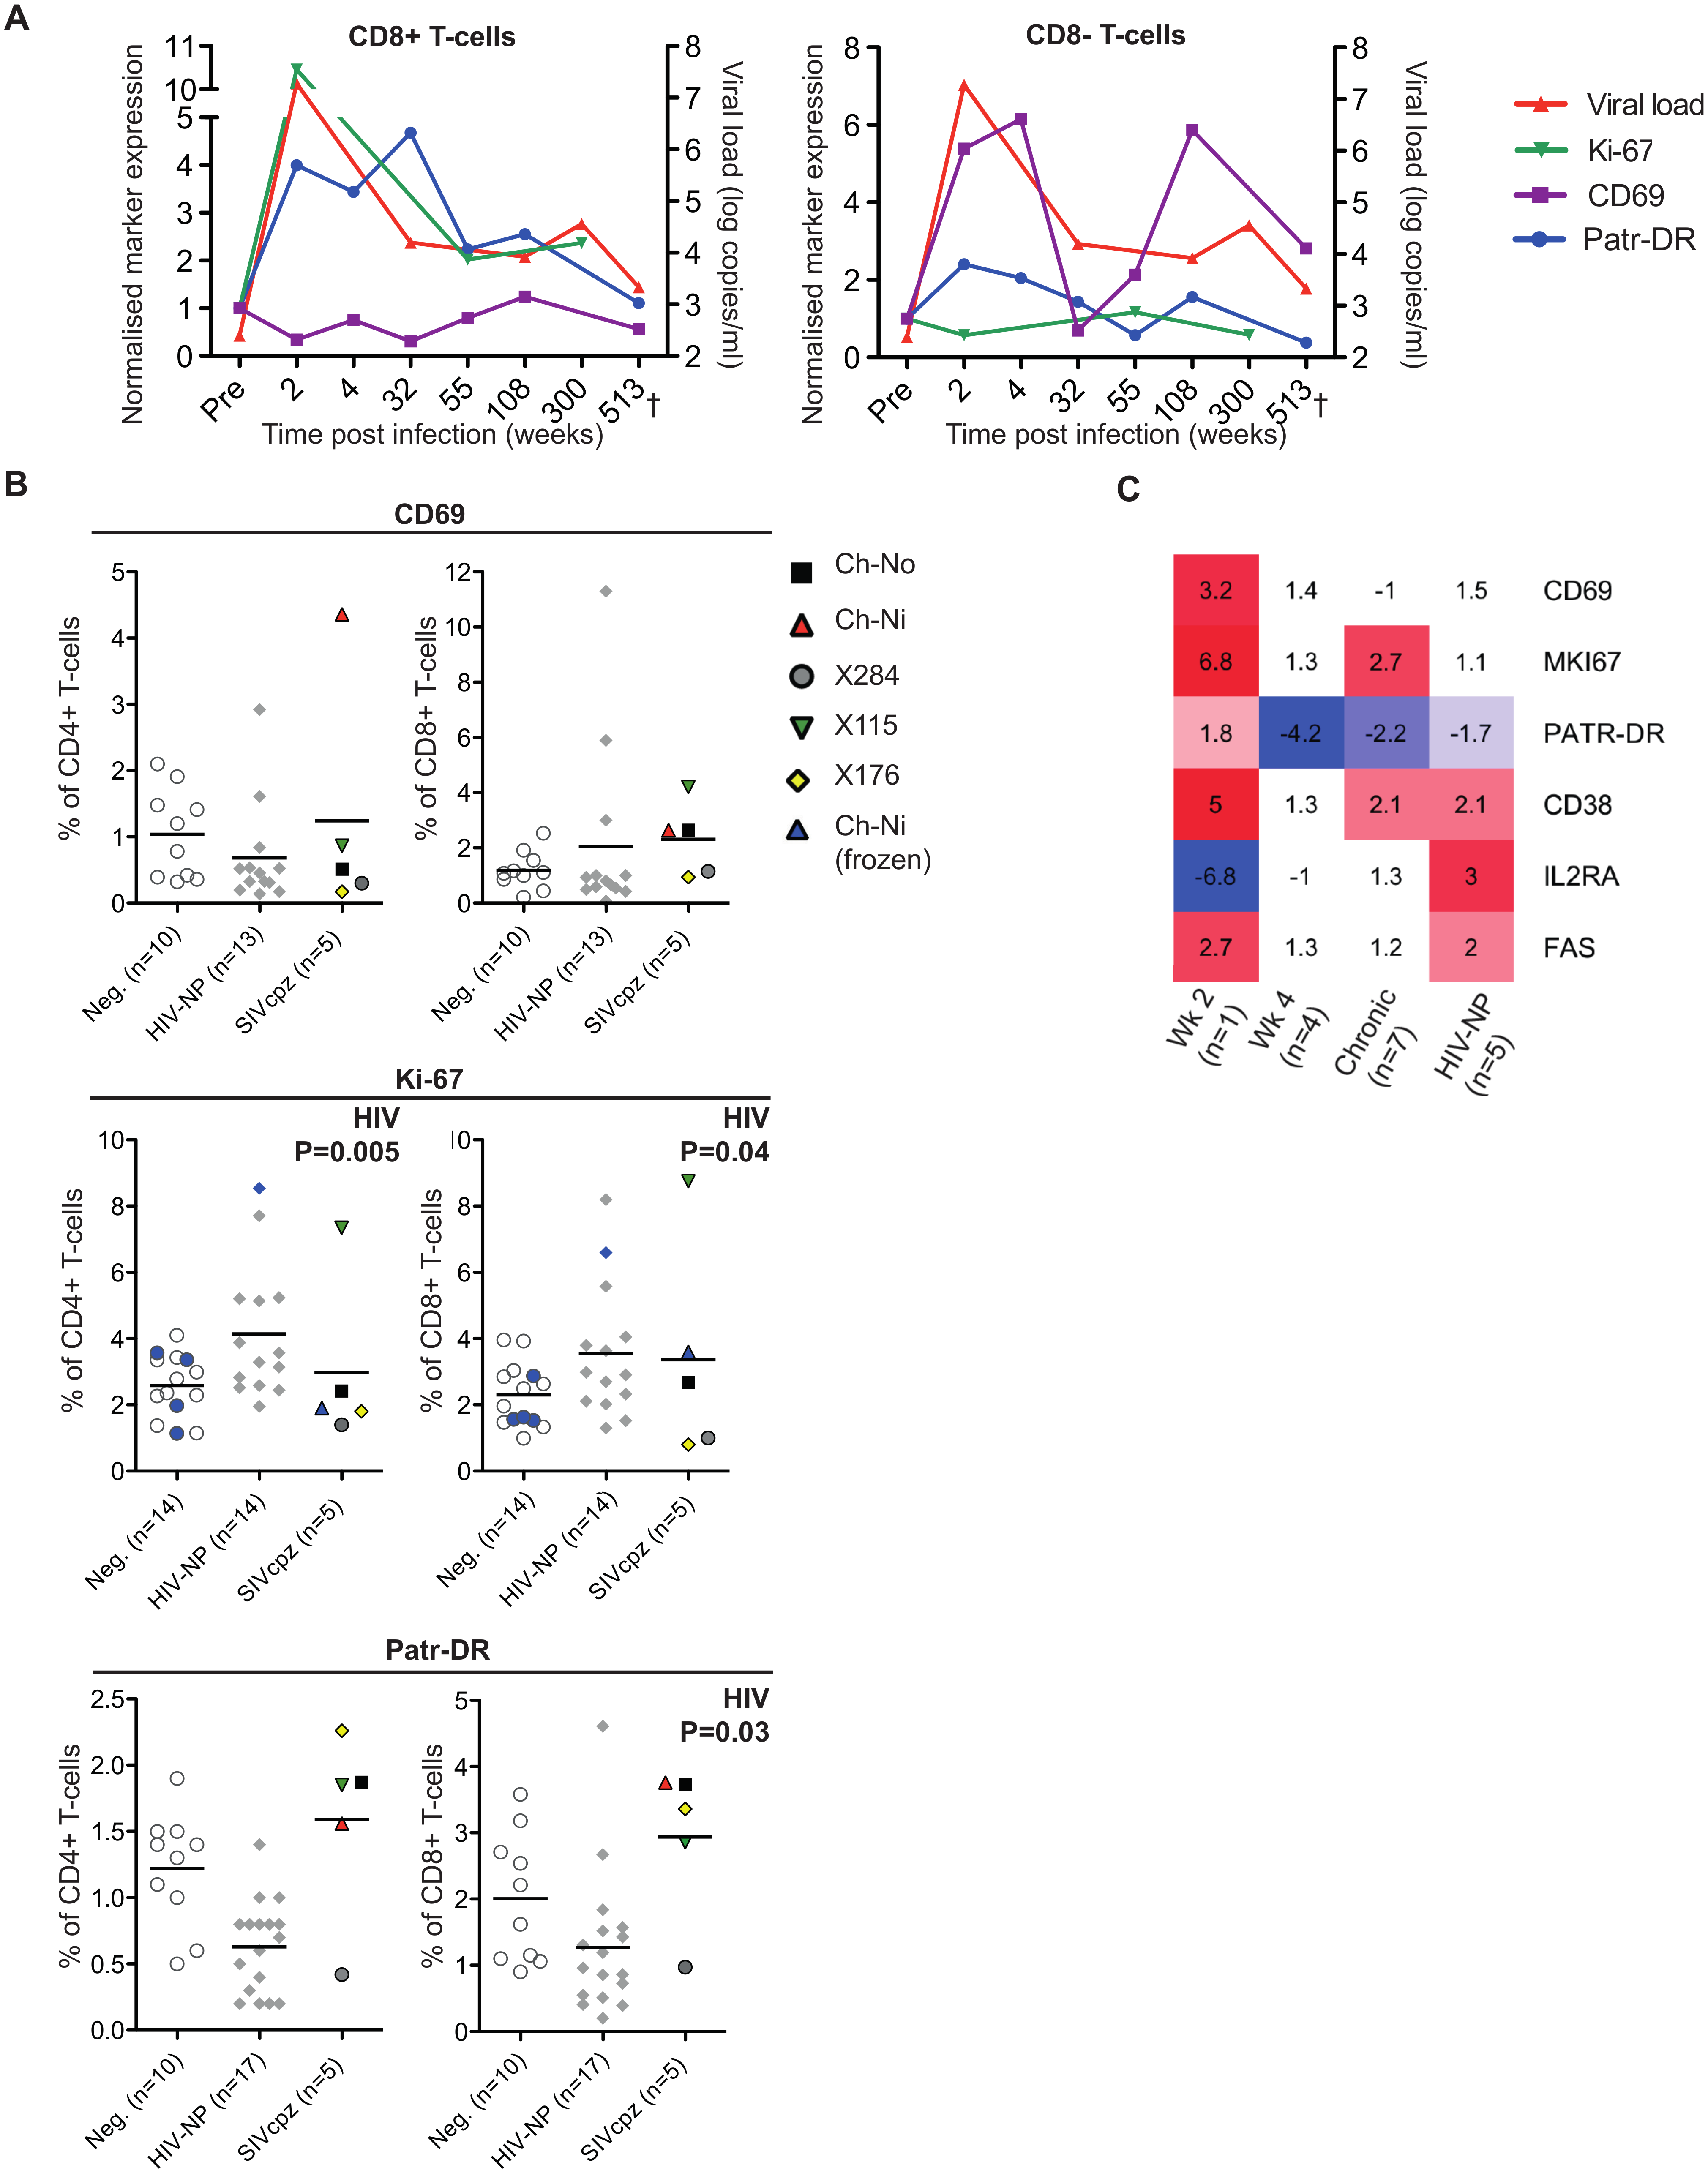 Peripheral blood T-cell activation in SIVcpz infected animals.